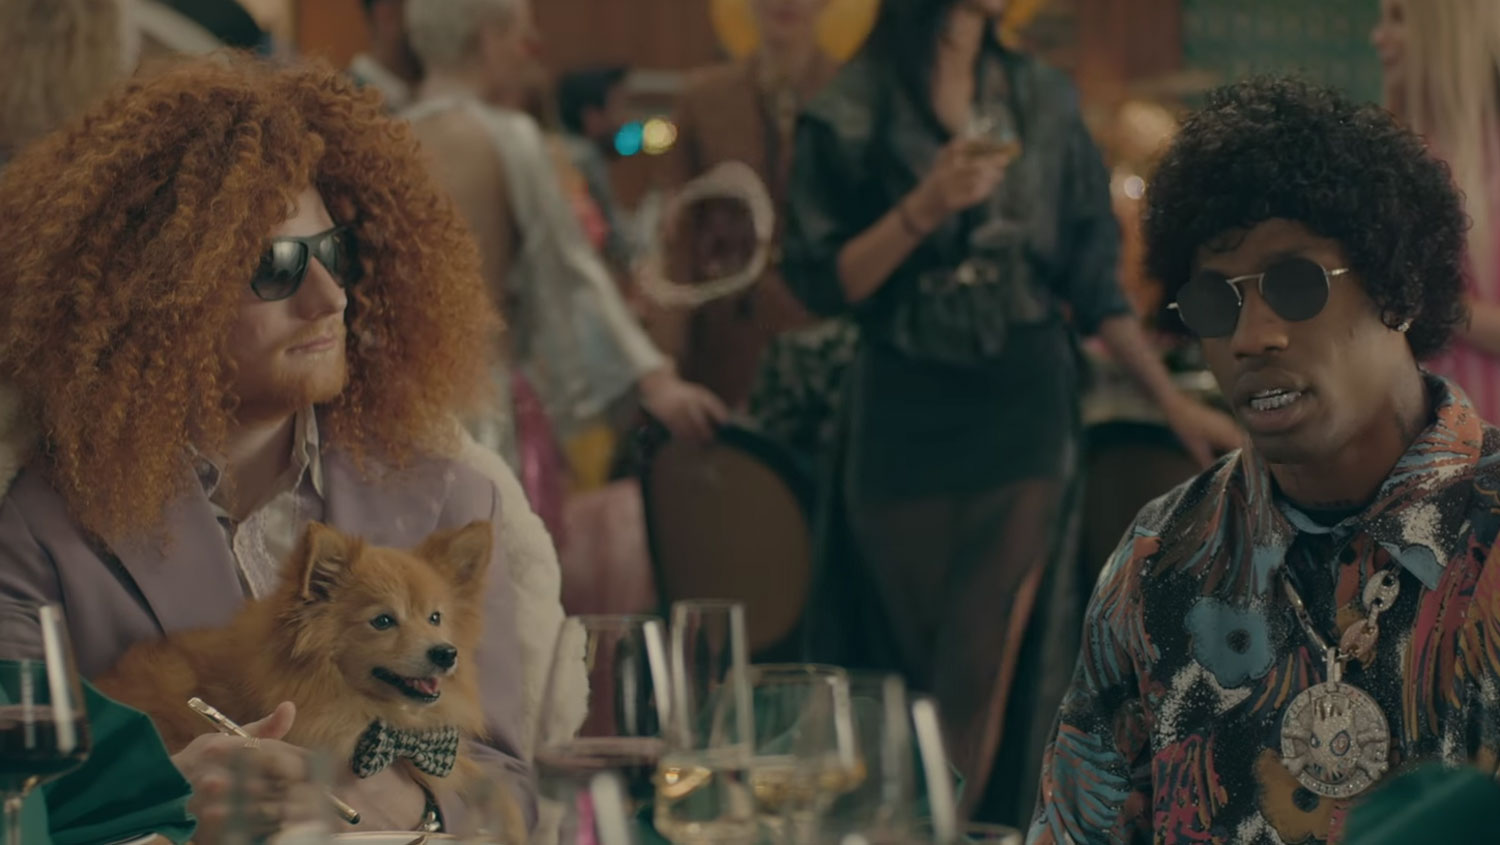 Ed Sheeran Transforms Into Different Characters in 'Antisocial' Video With Travis Scott – Watch!